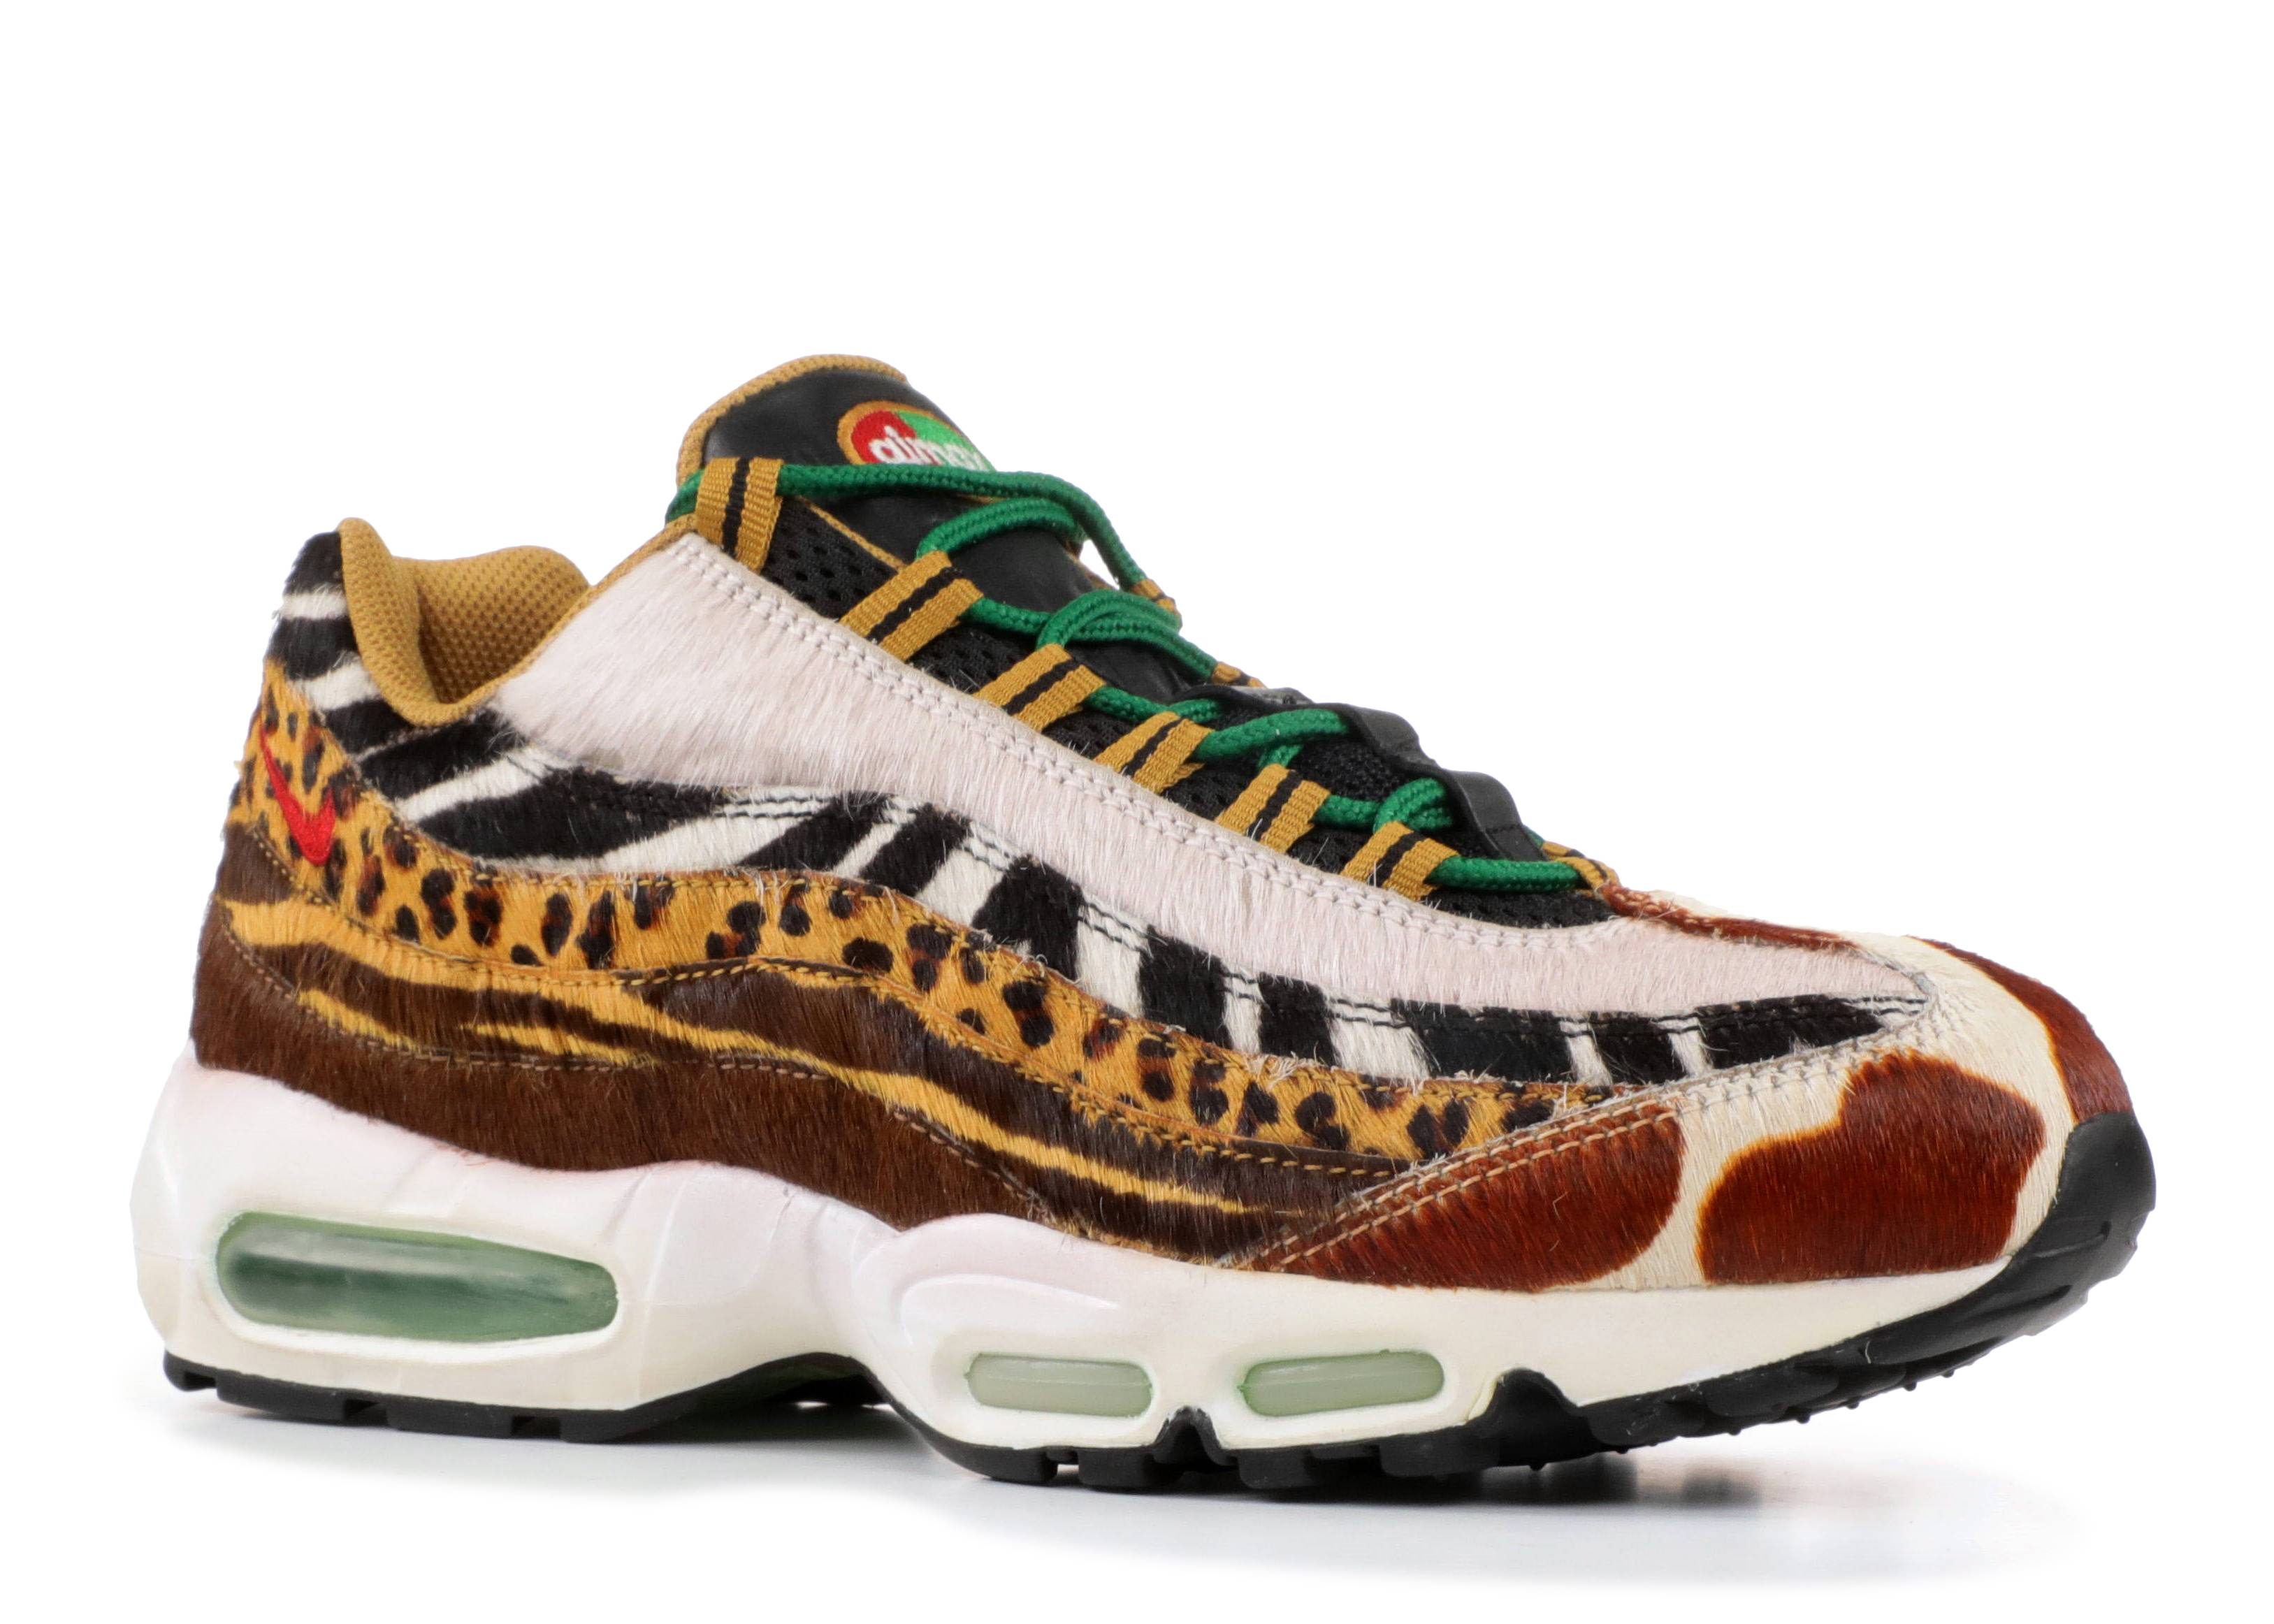 new arrival b820f bda23 ... italy air max 95 supreme animal pack nike 314993 261 pony sport red  classic green wheat